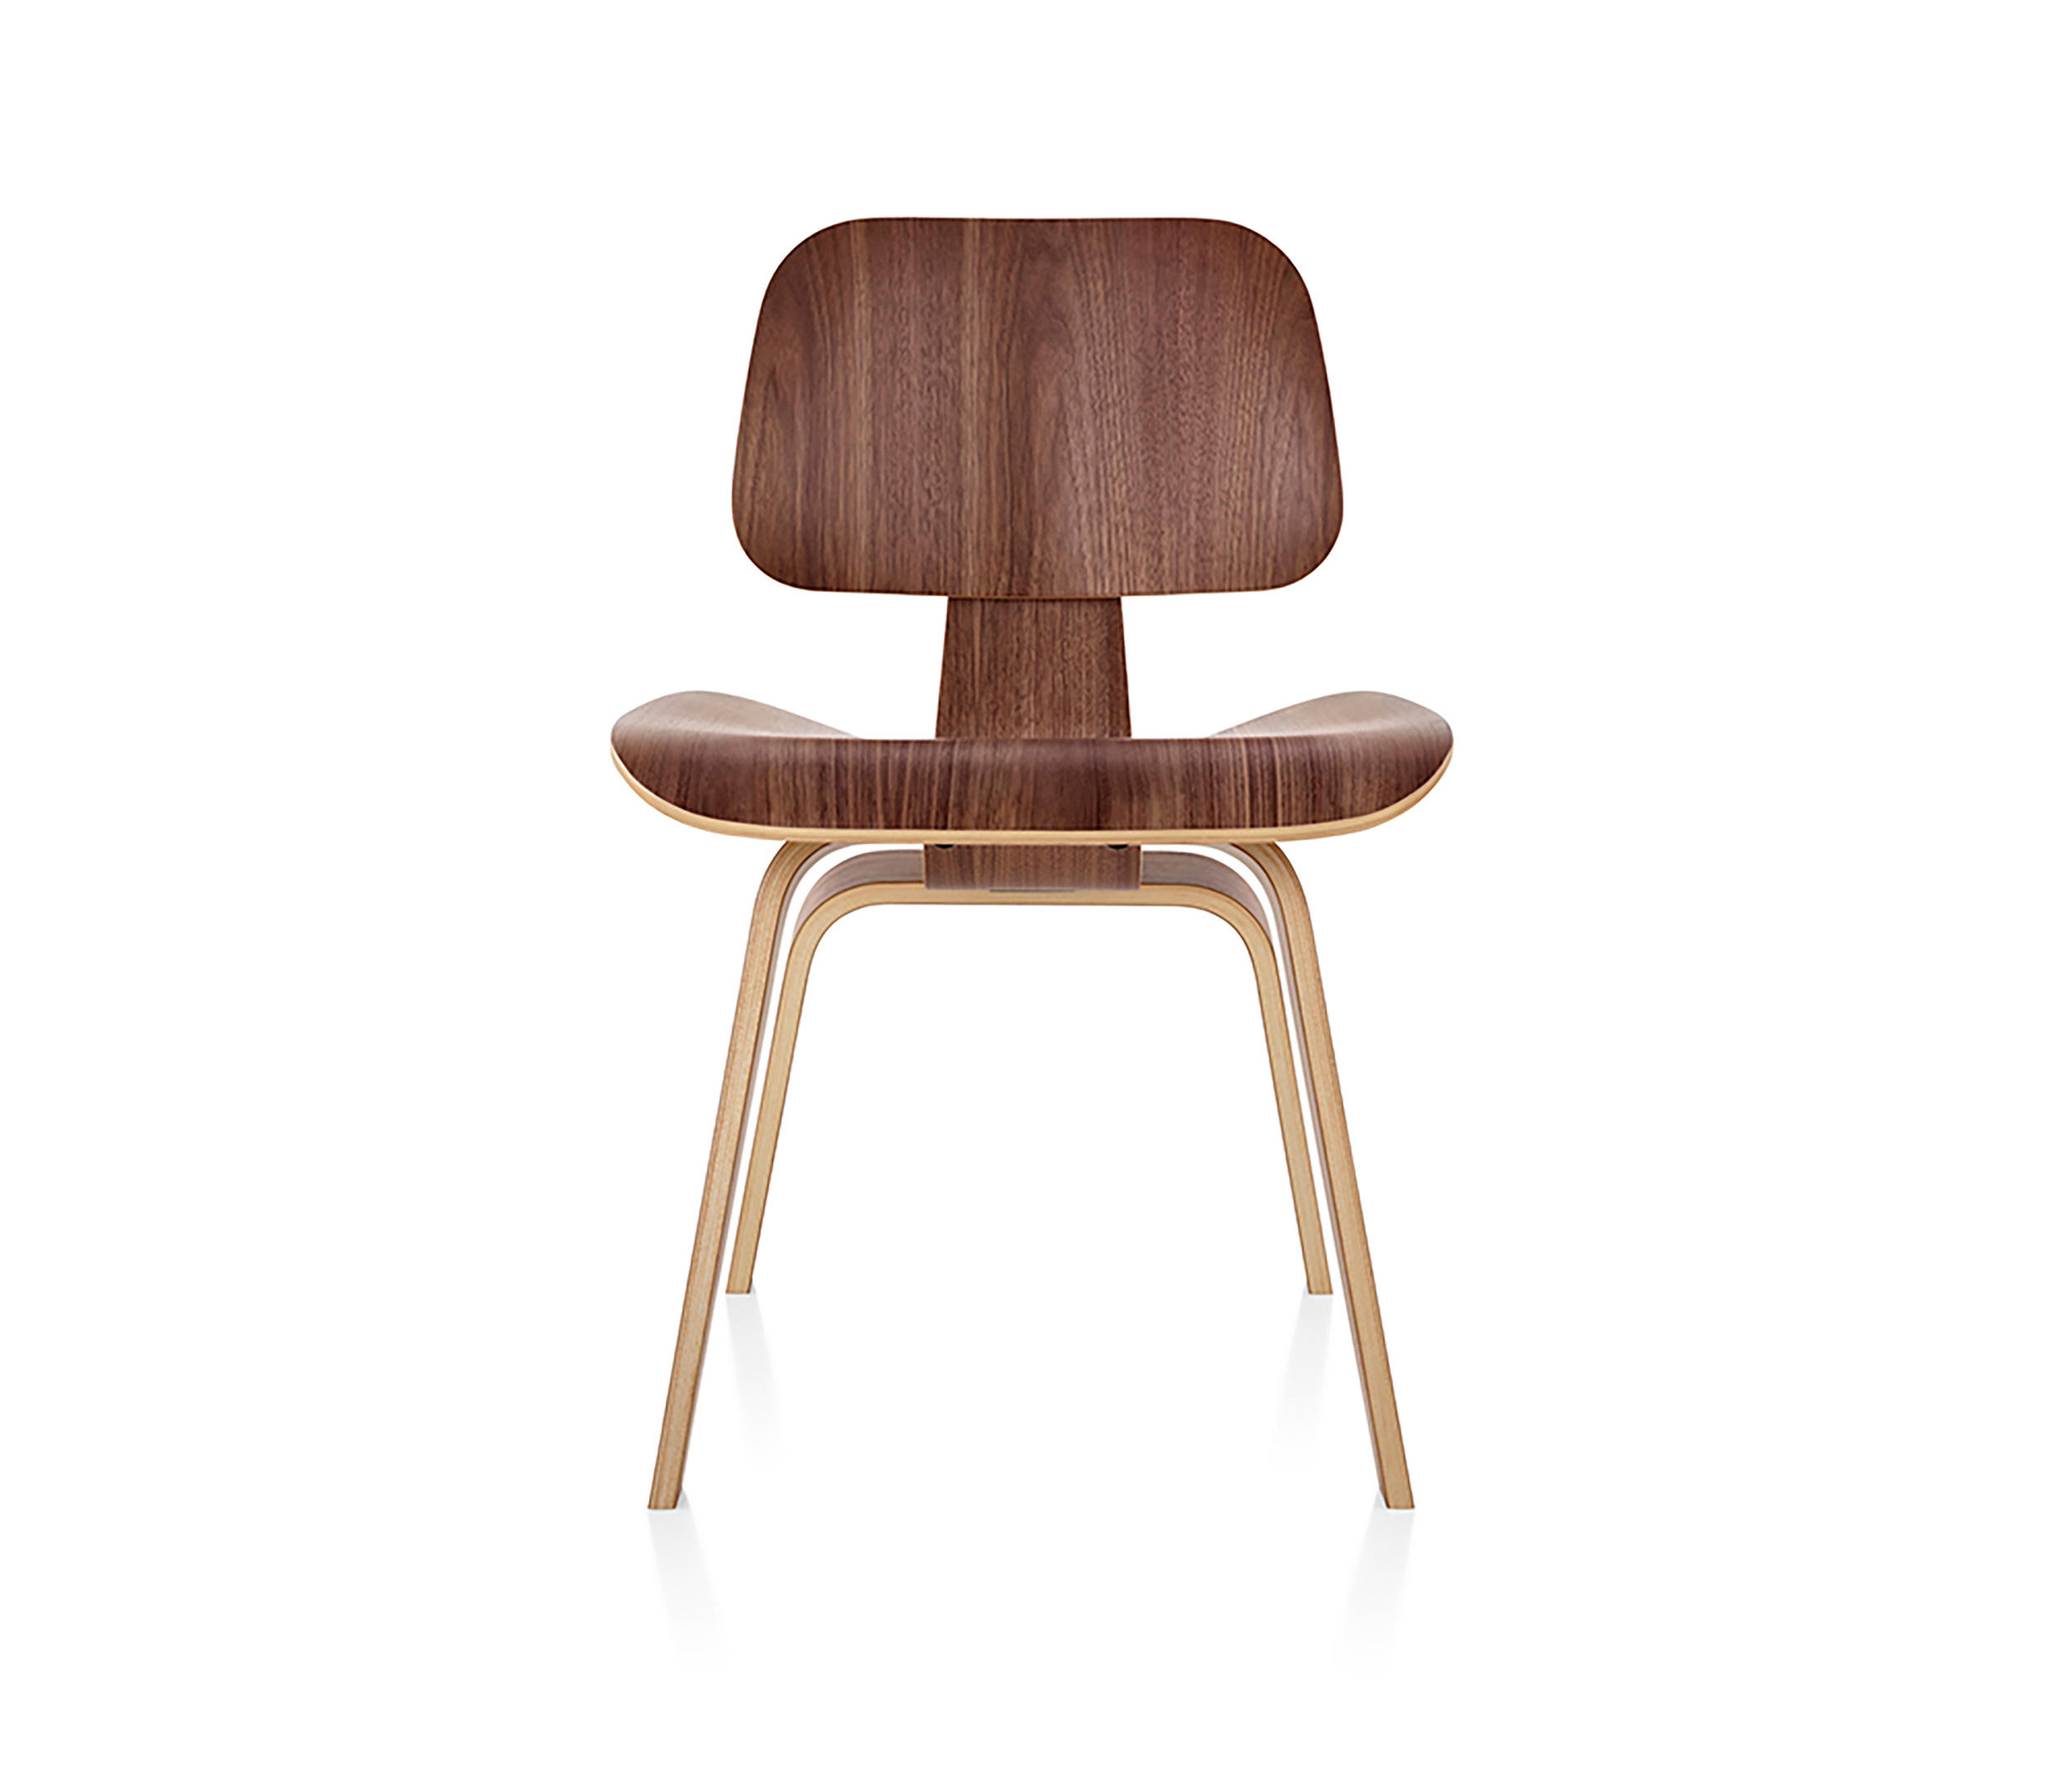 EAMES MOLDED PLYWOOD LOUNGE CHAIR WOOD BASE Lounge chairs from